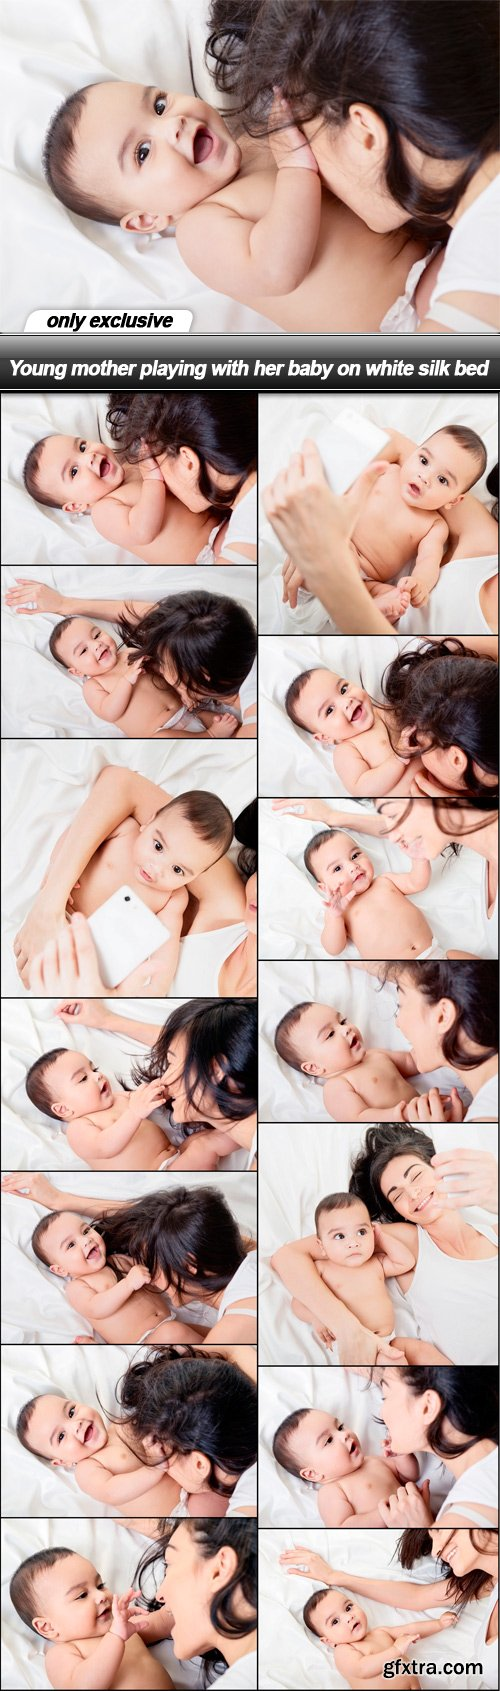 Young mother playing with her baby on white silk bed - 14 UHQ JPEG